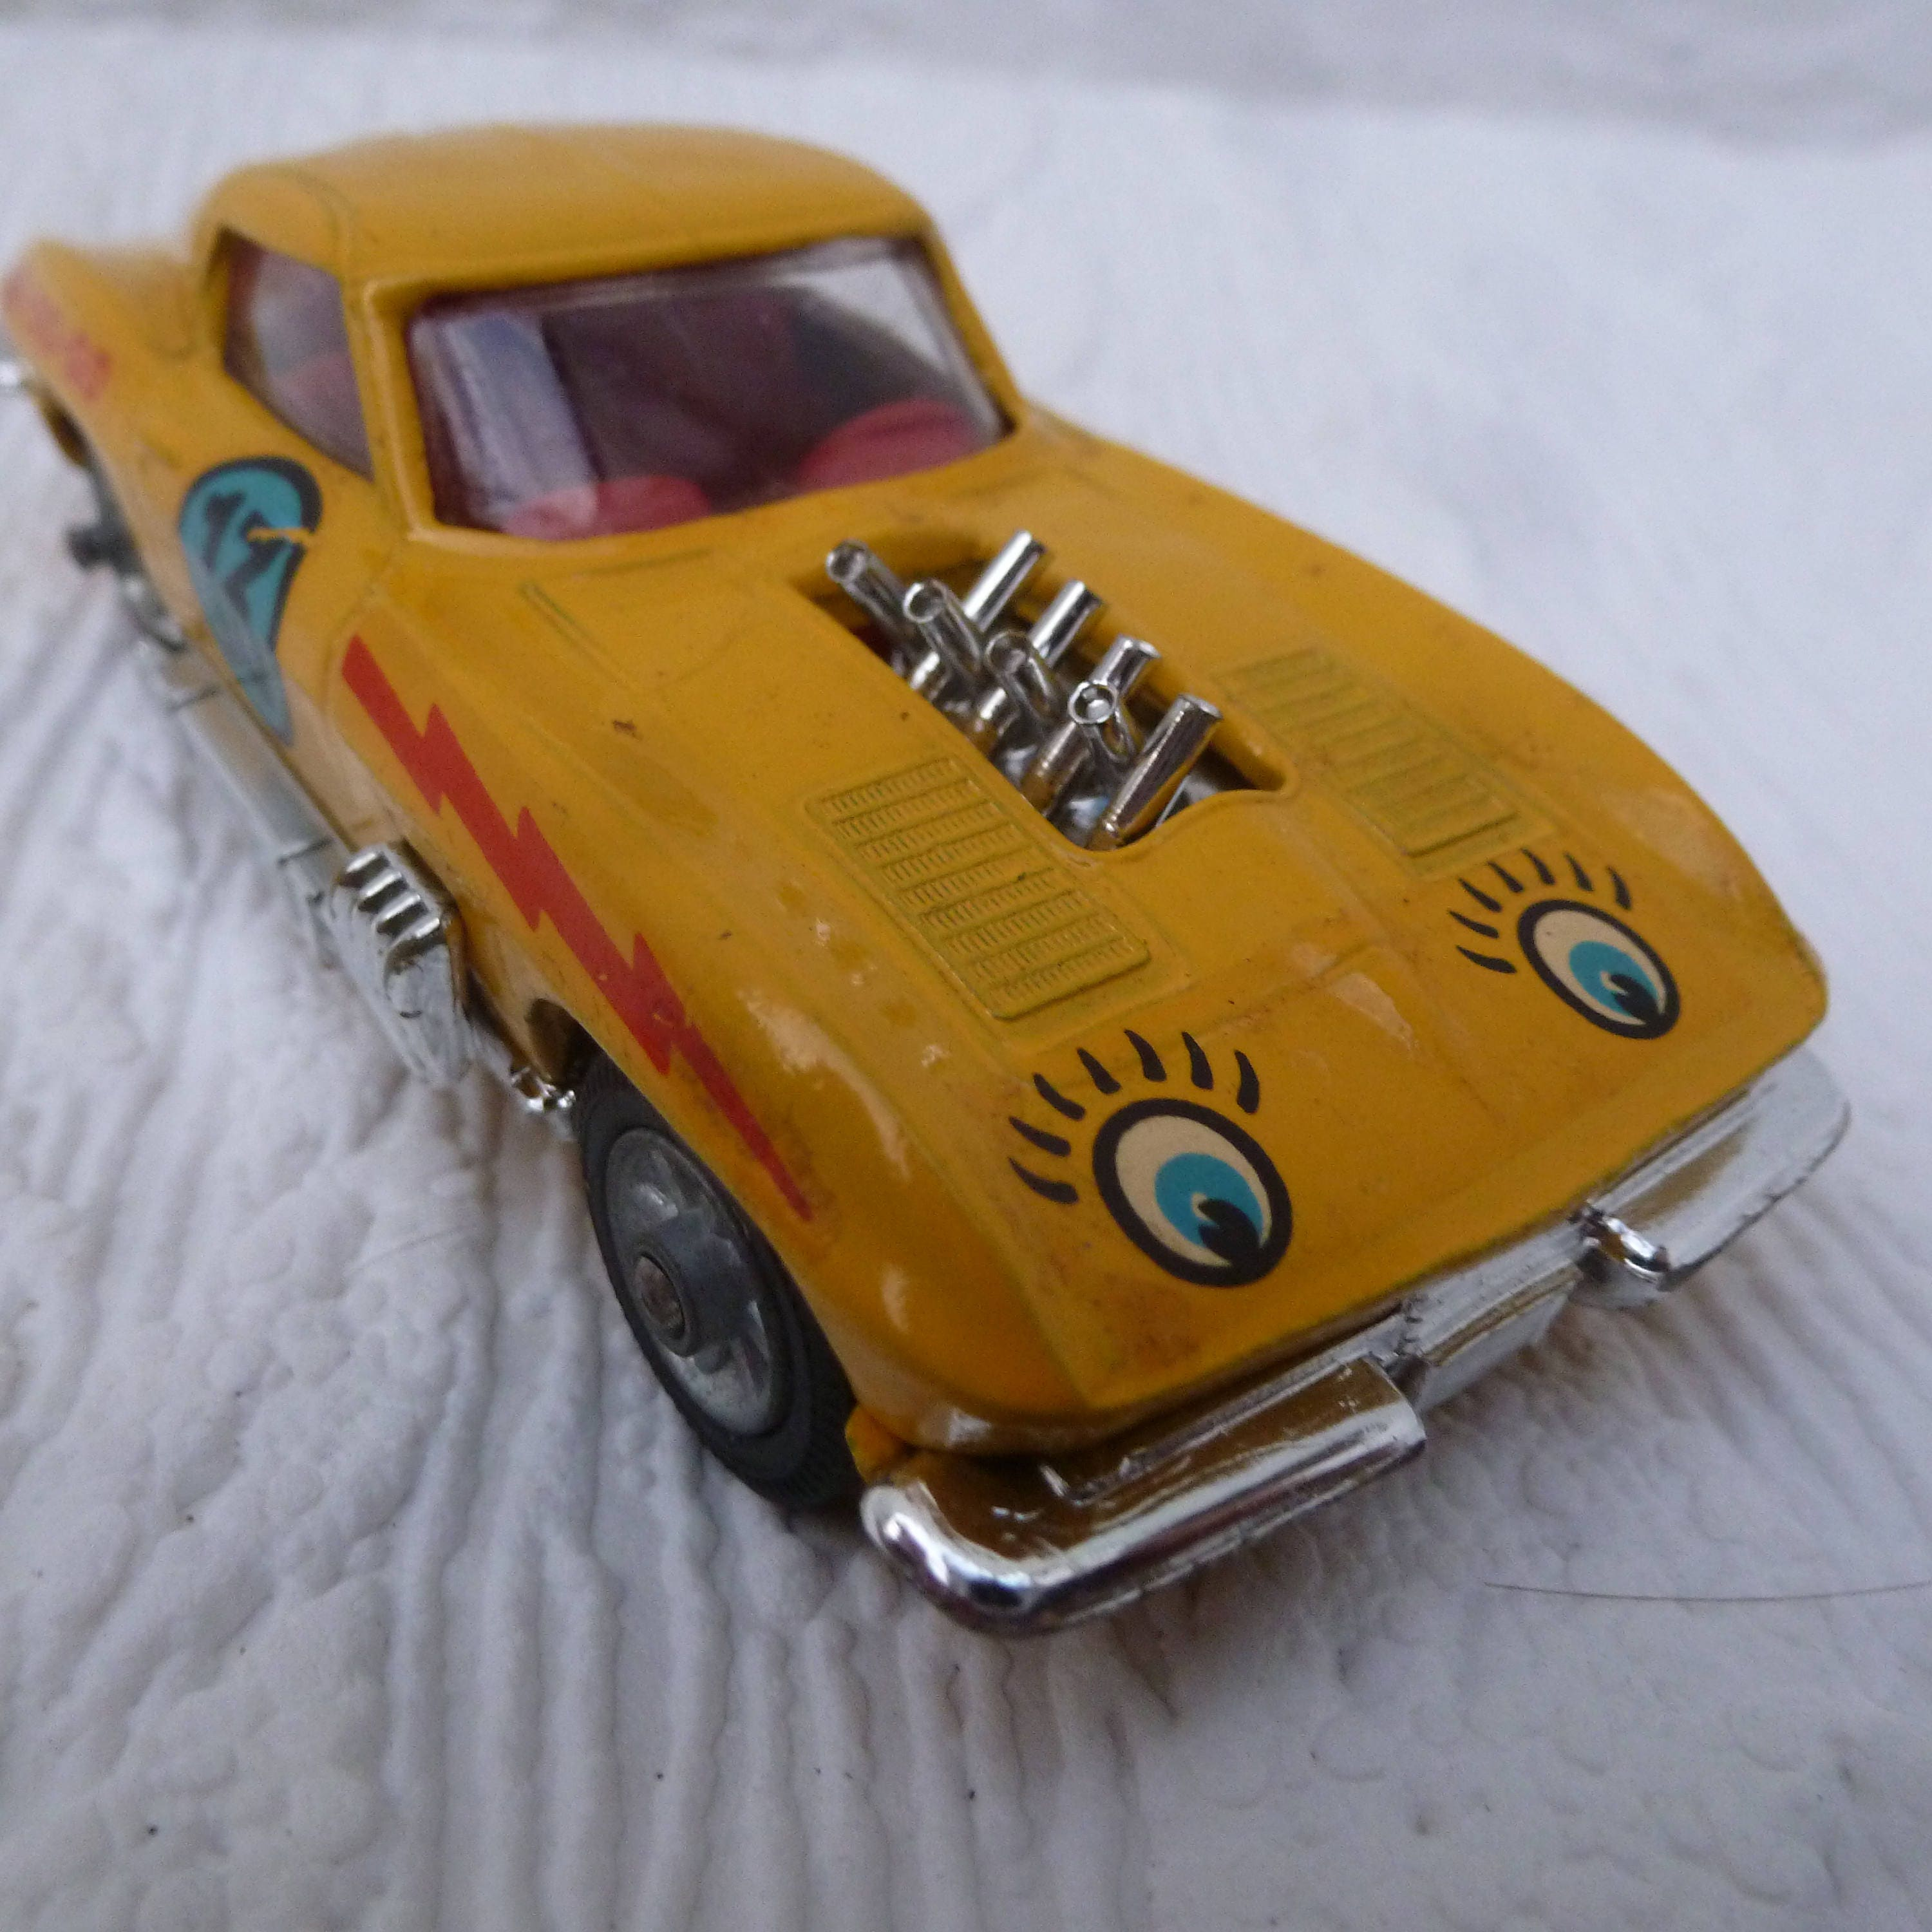 Yellow toy vehicle car 1960s corgi model car gift for him present Made in England car toy vintage collectors corgi vehicle sting ray retro.